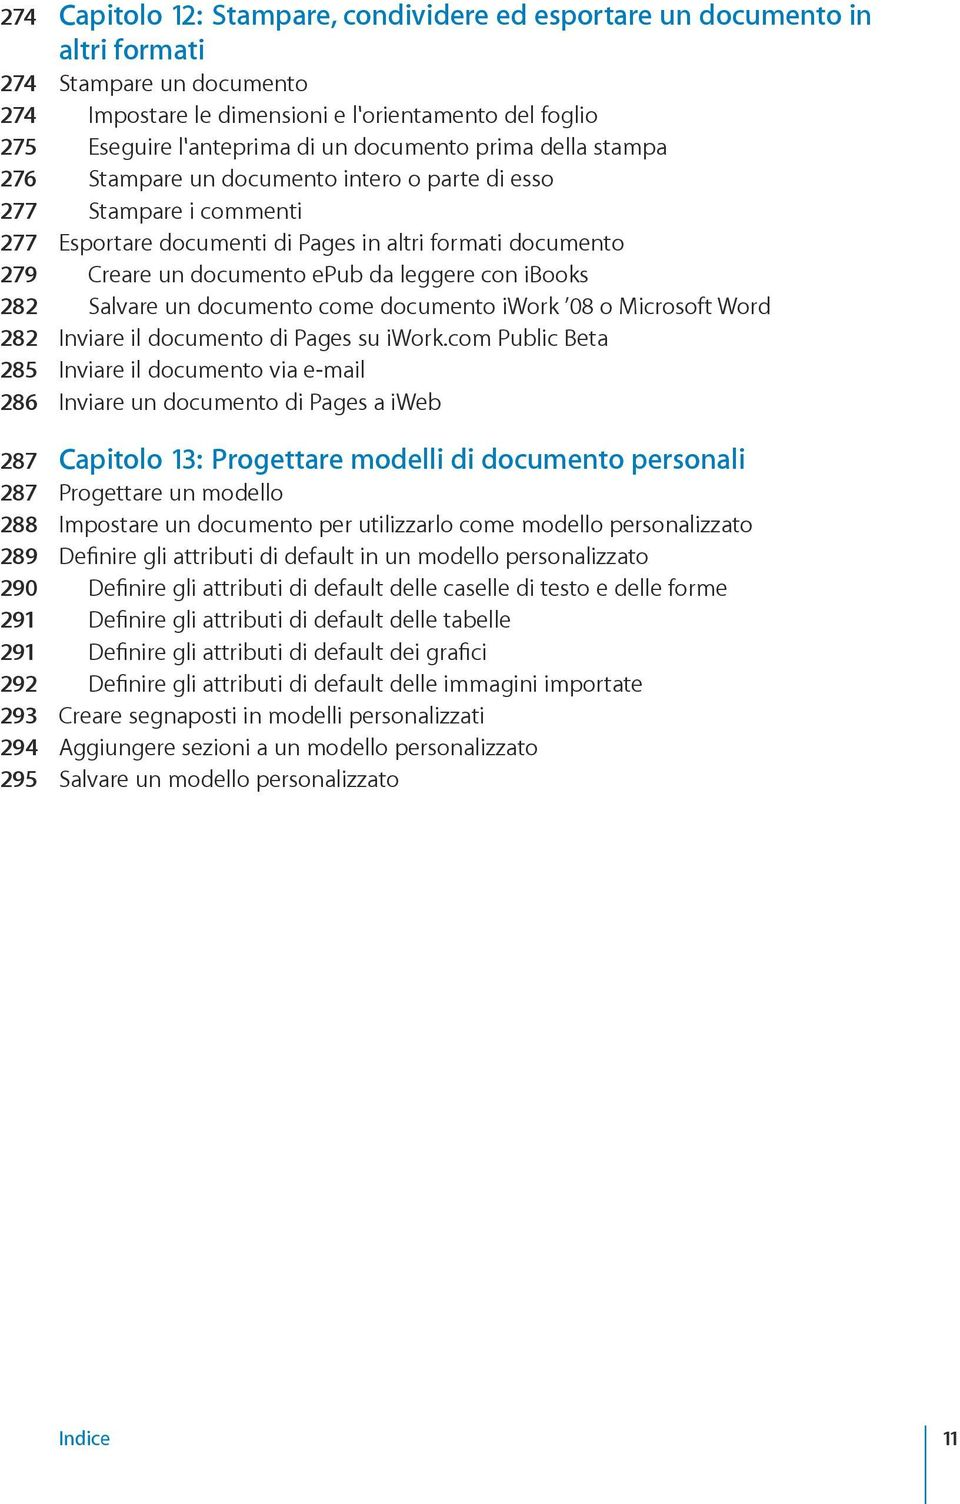 leggere con ibooks 282 Salvare un documento come documento iwork 08 o Microsoft Word 282 Inviare il documento di Pages su iwork.